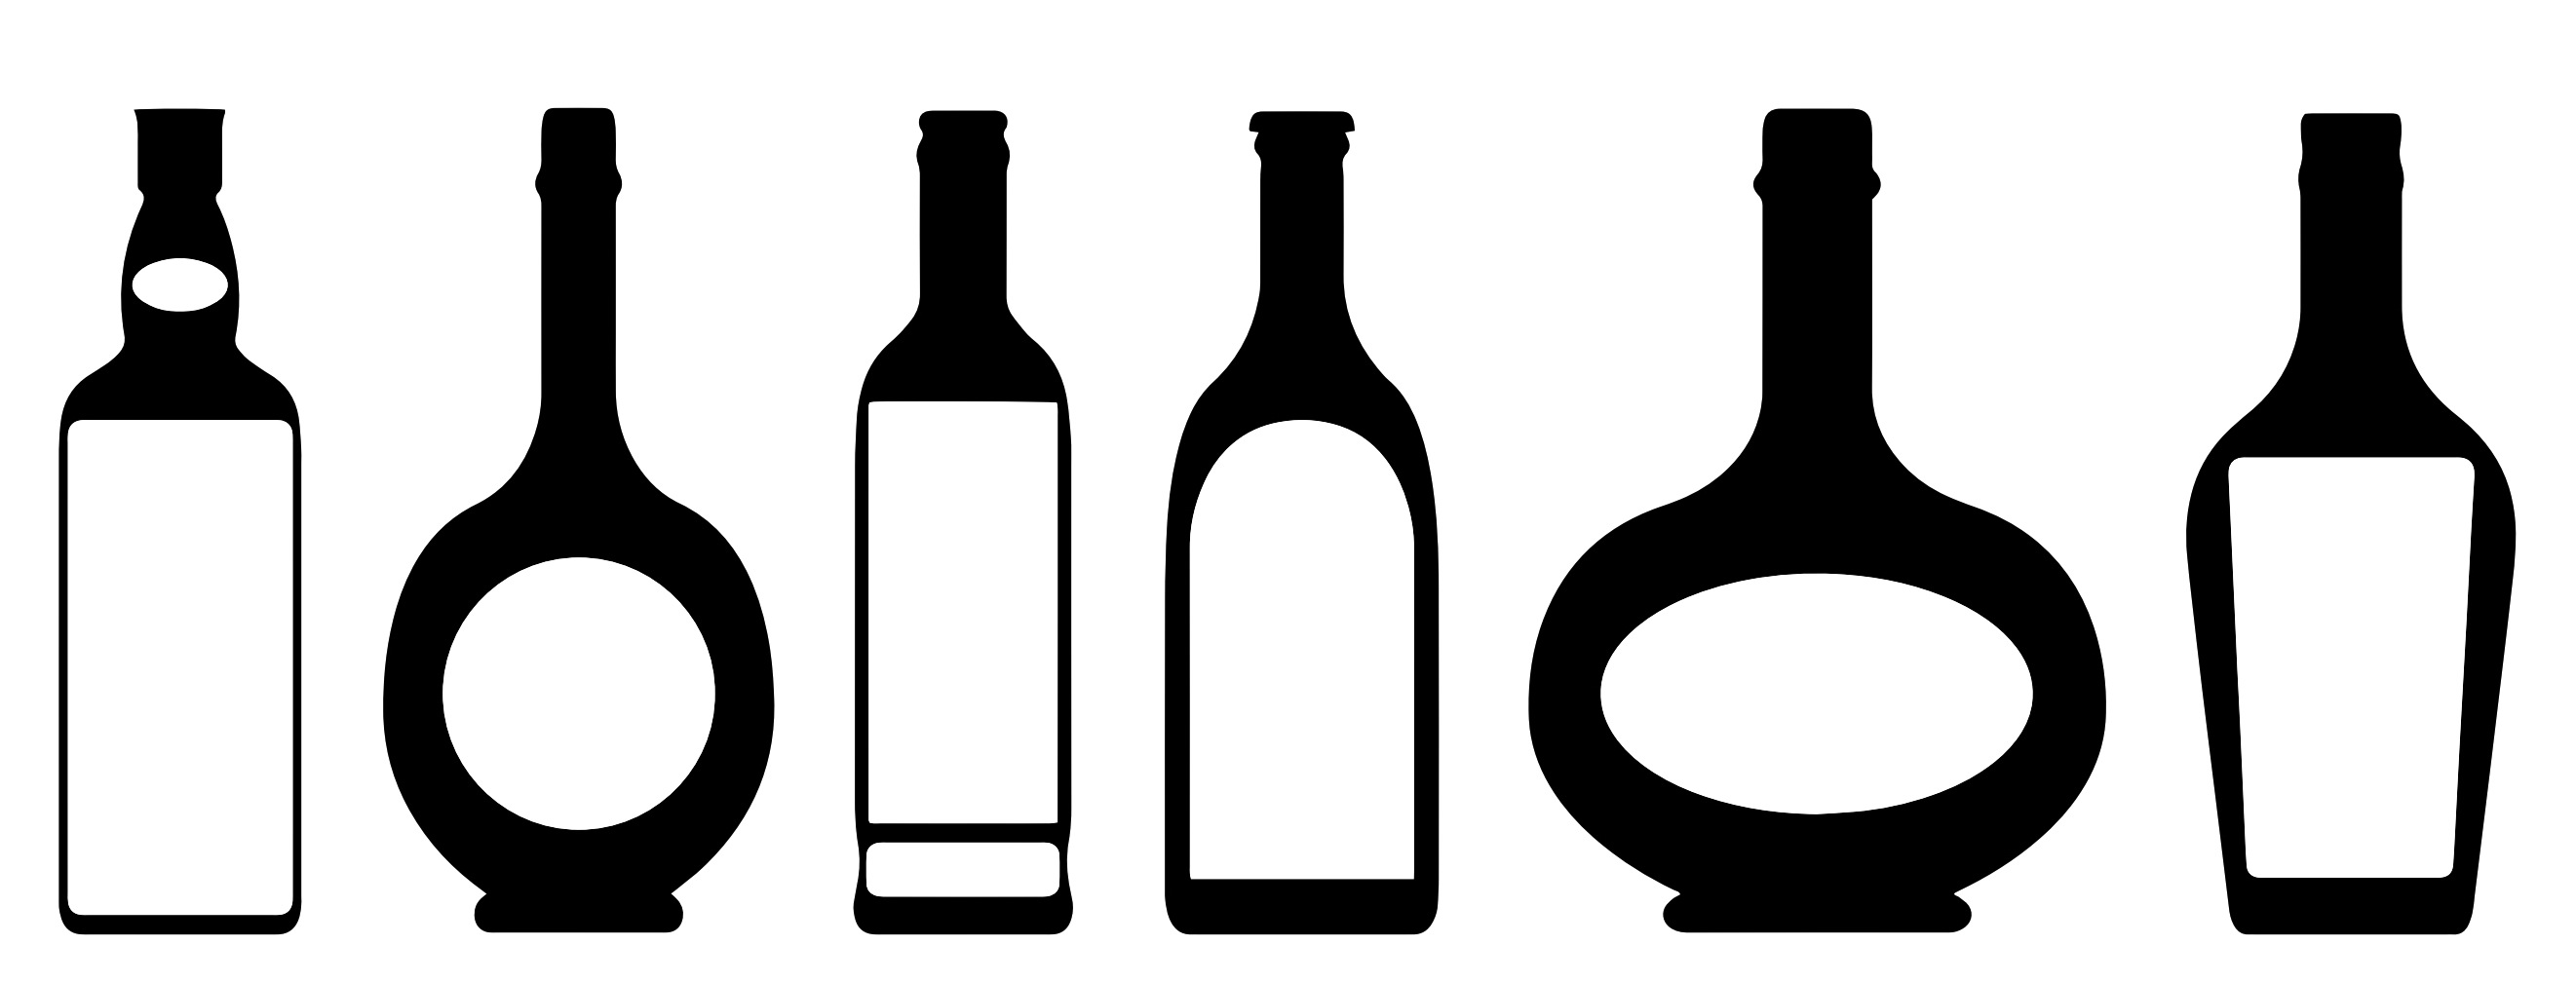 vector transparent Free liquor cliparts download. Alcohol bottle clipart black and white.